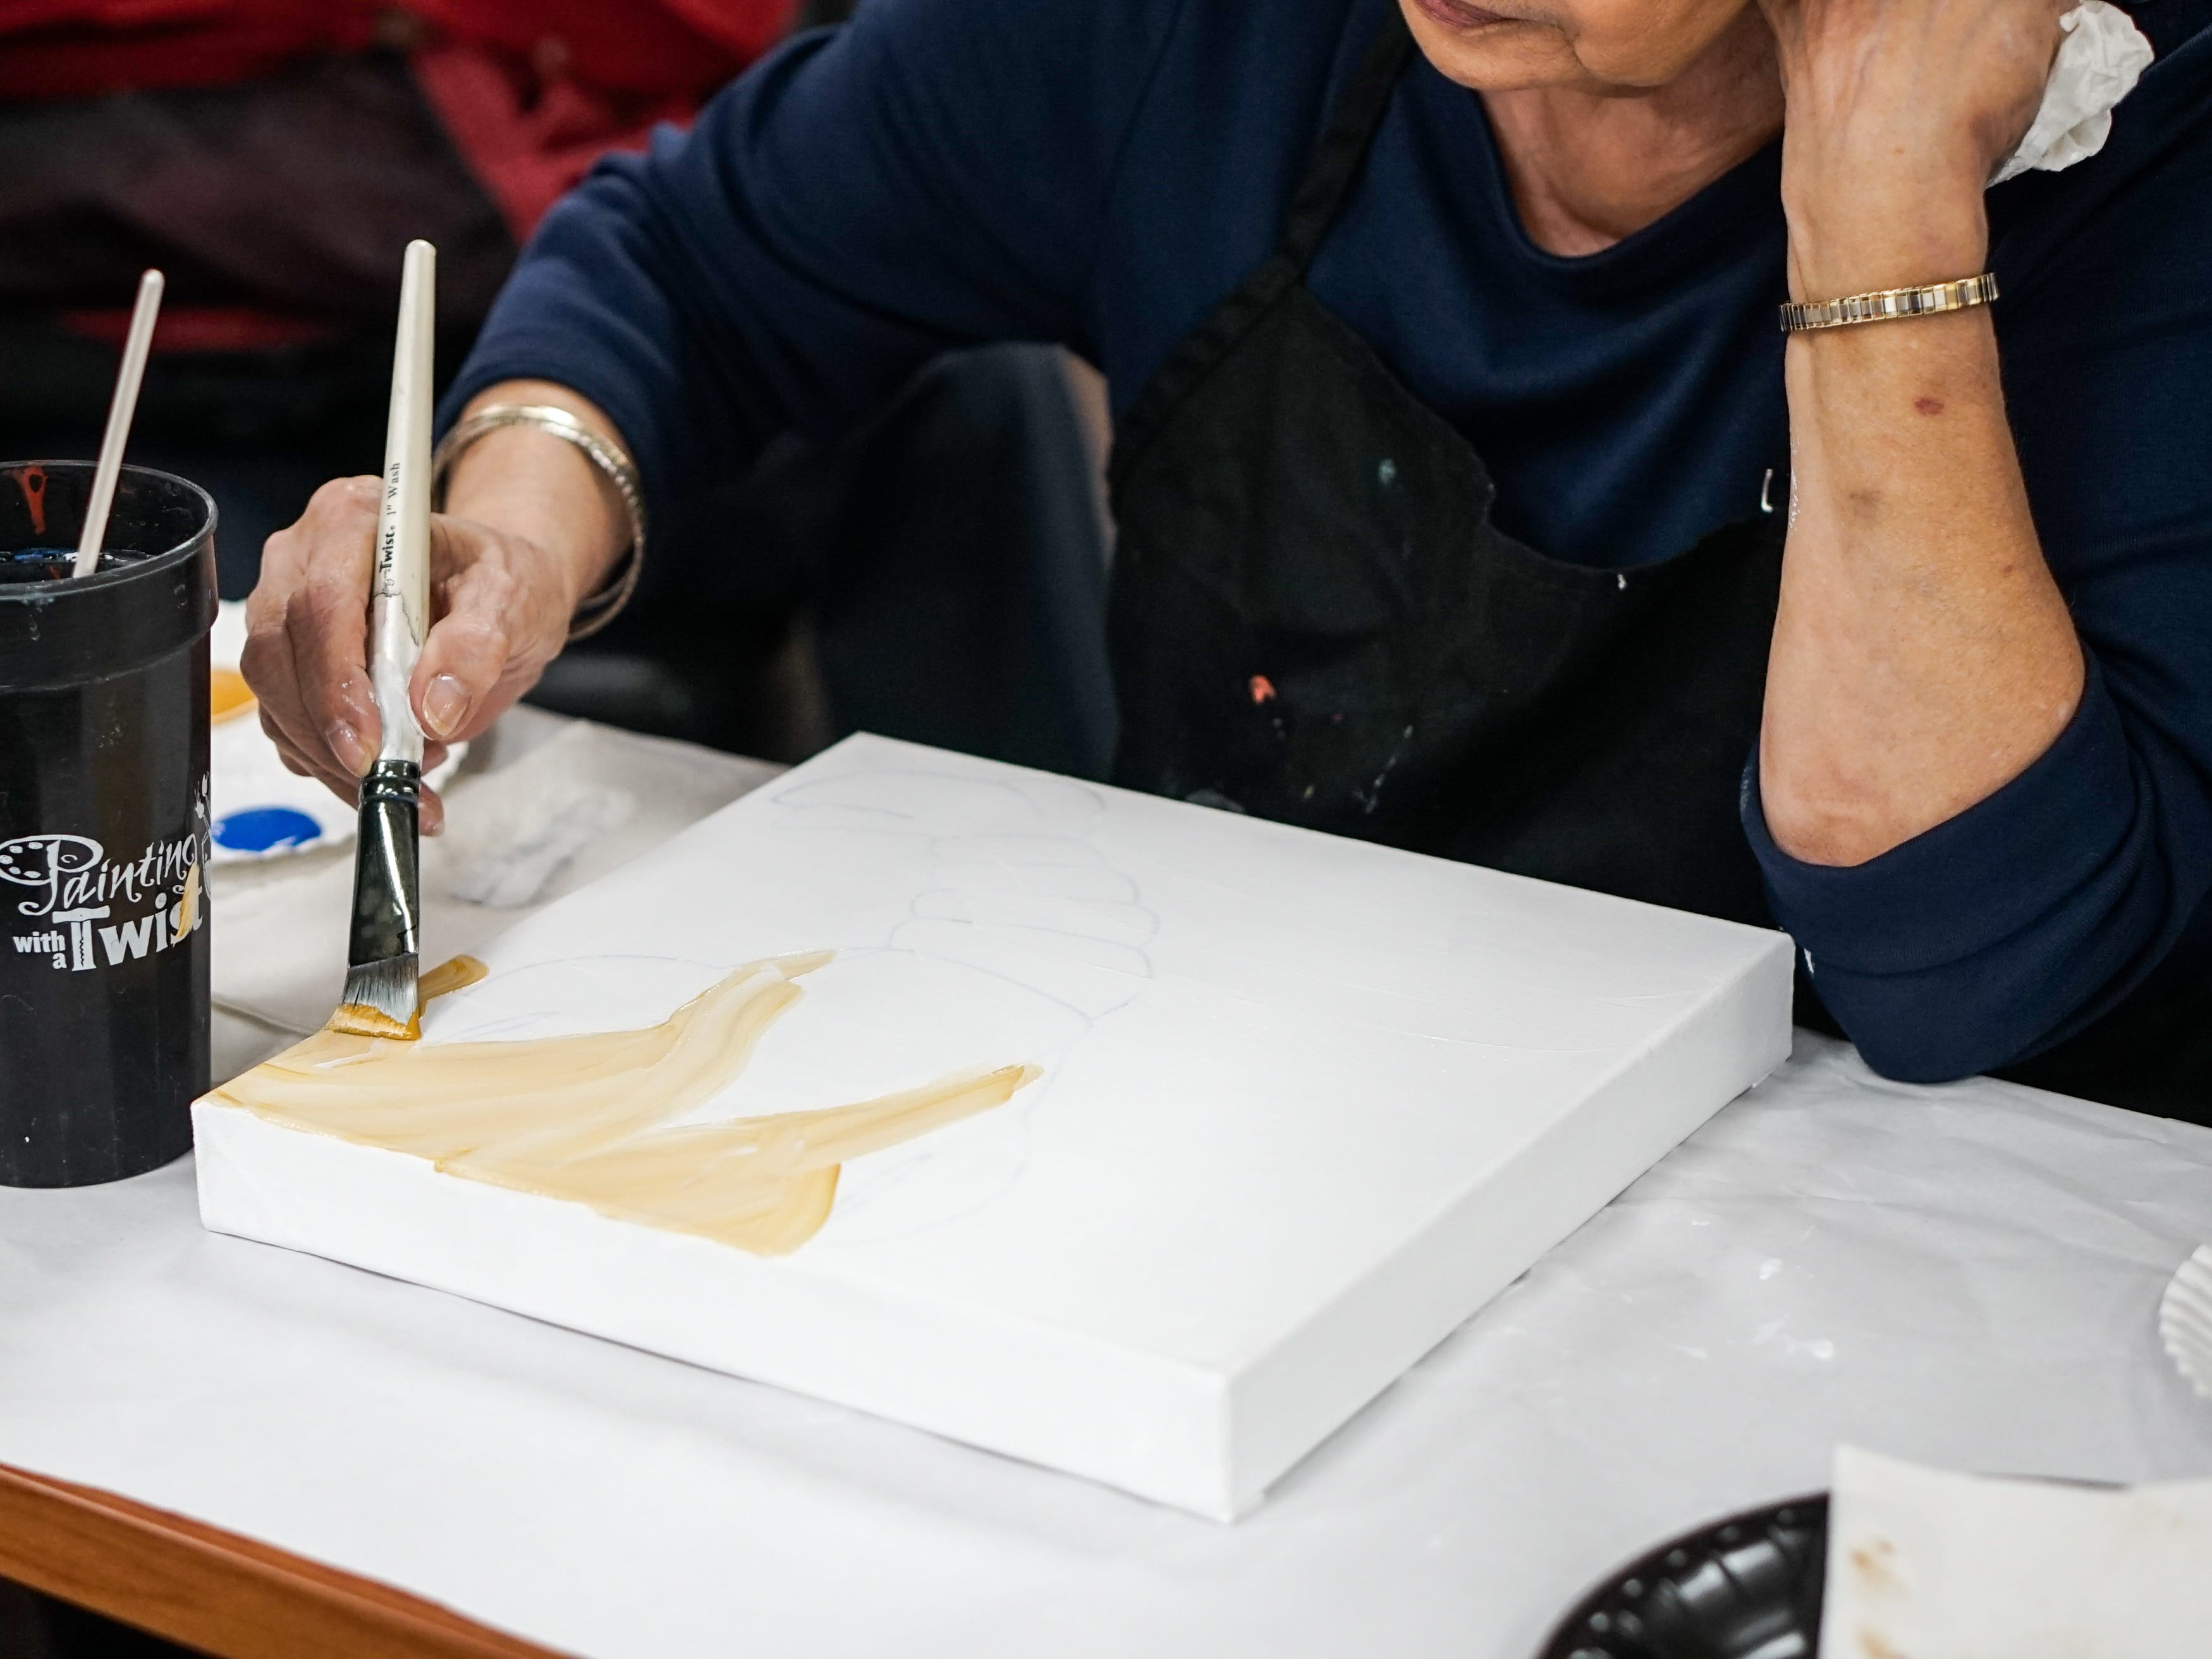 Former stroke patients who are members of Lafayette General Medical Center's Acadiana Stroke Support Group celebrate recovery with a painting event May 14 in conjunction with Painting with a Twist.